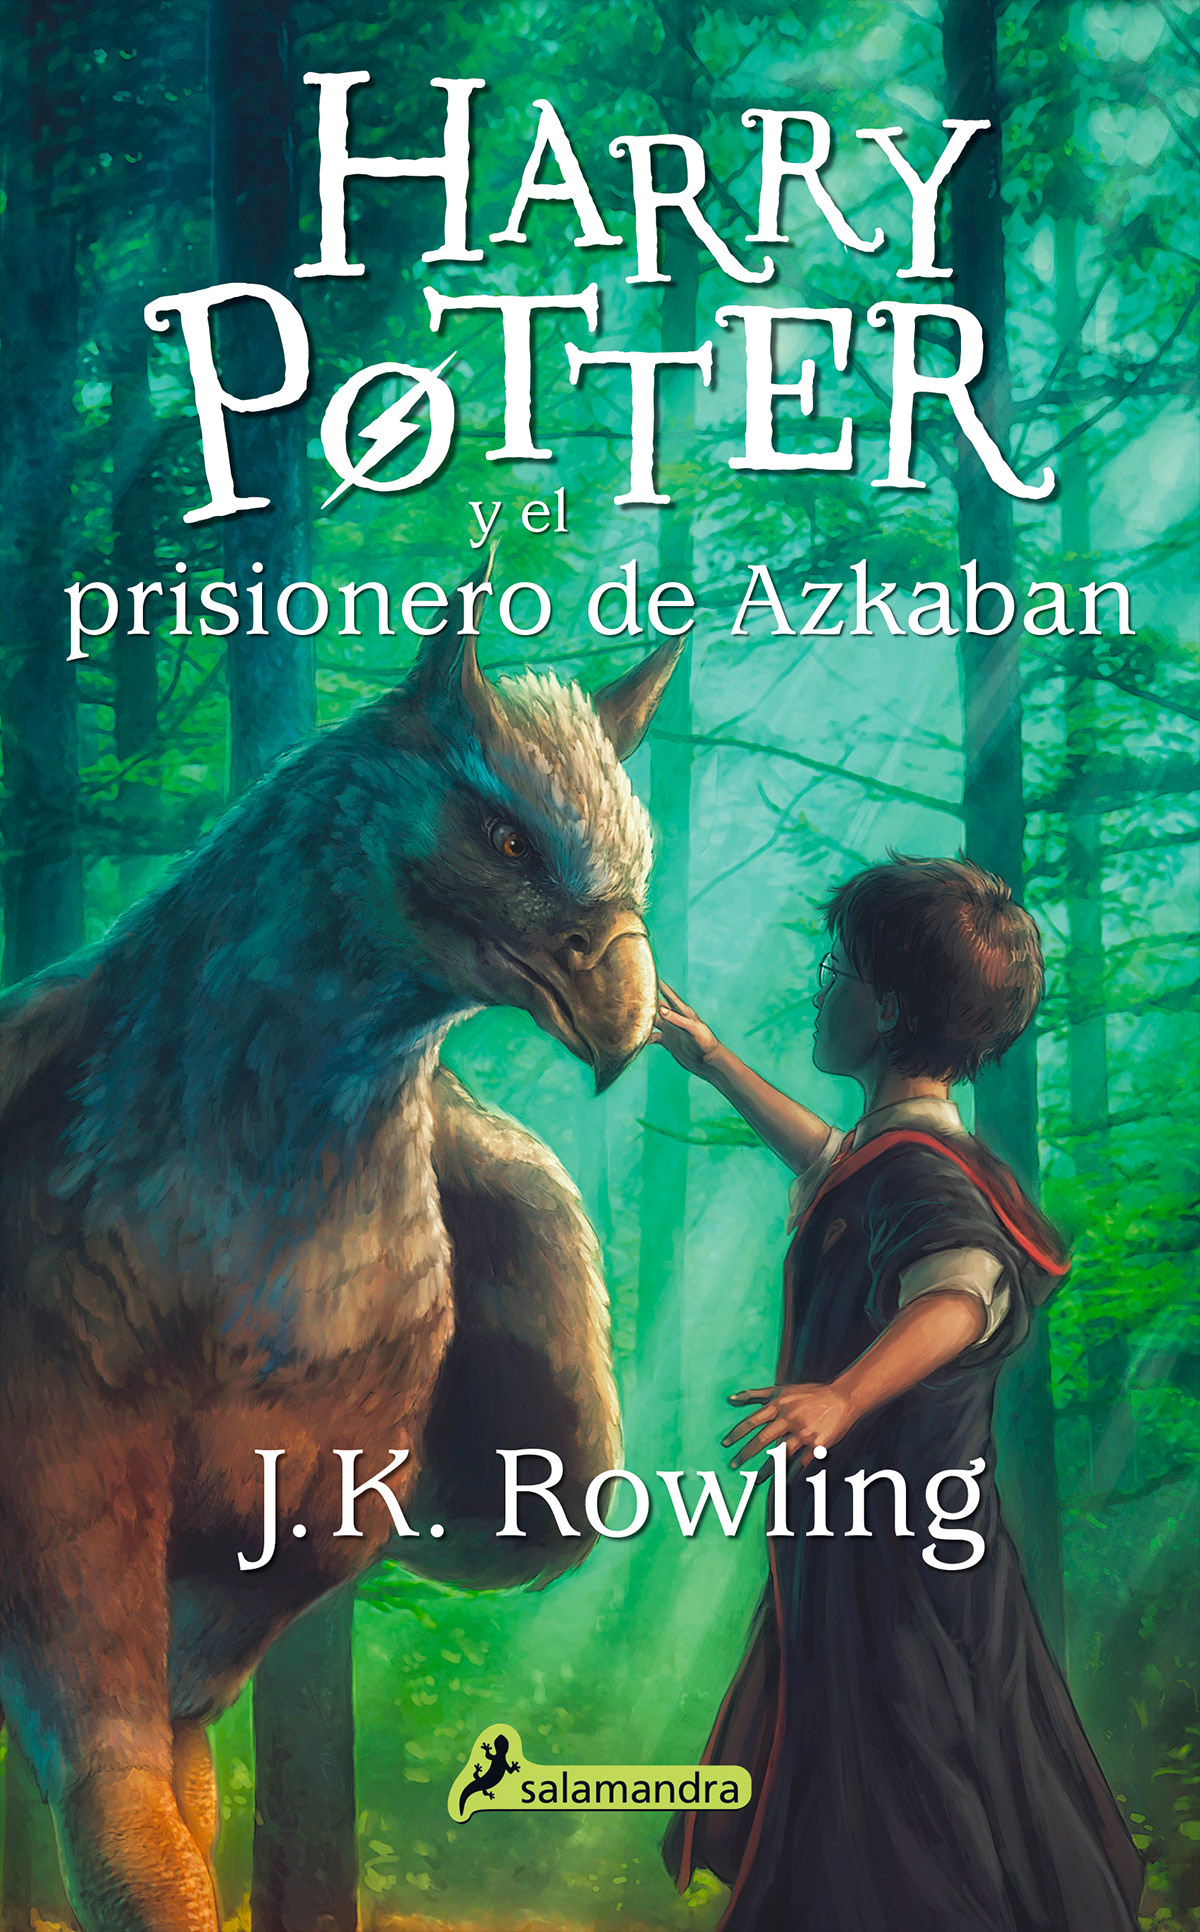 'Prisoner of Azkaban' Spanish anniversary edition